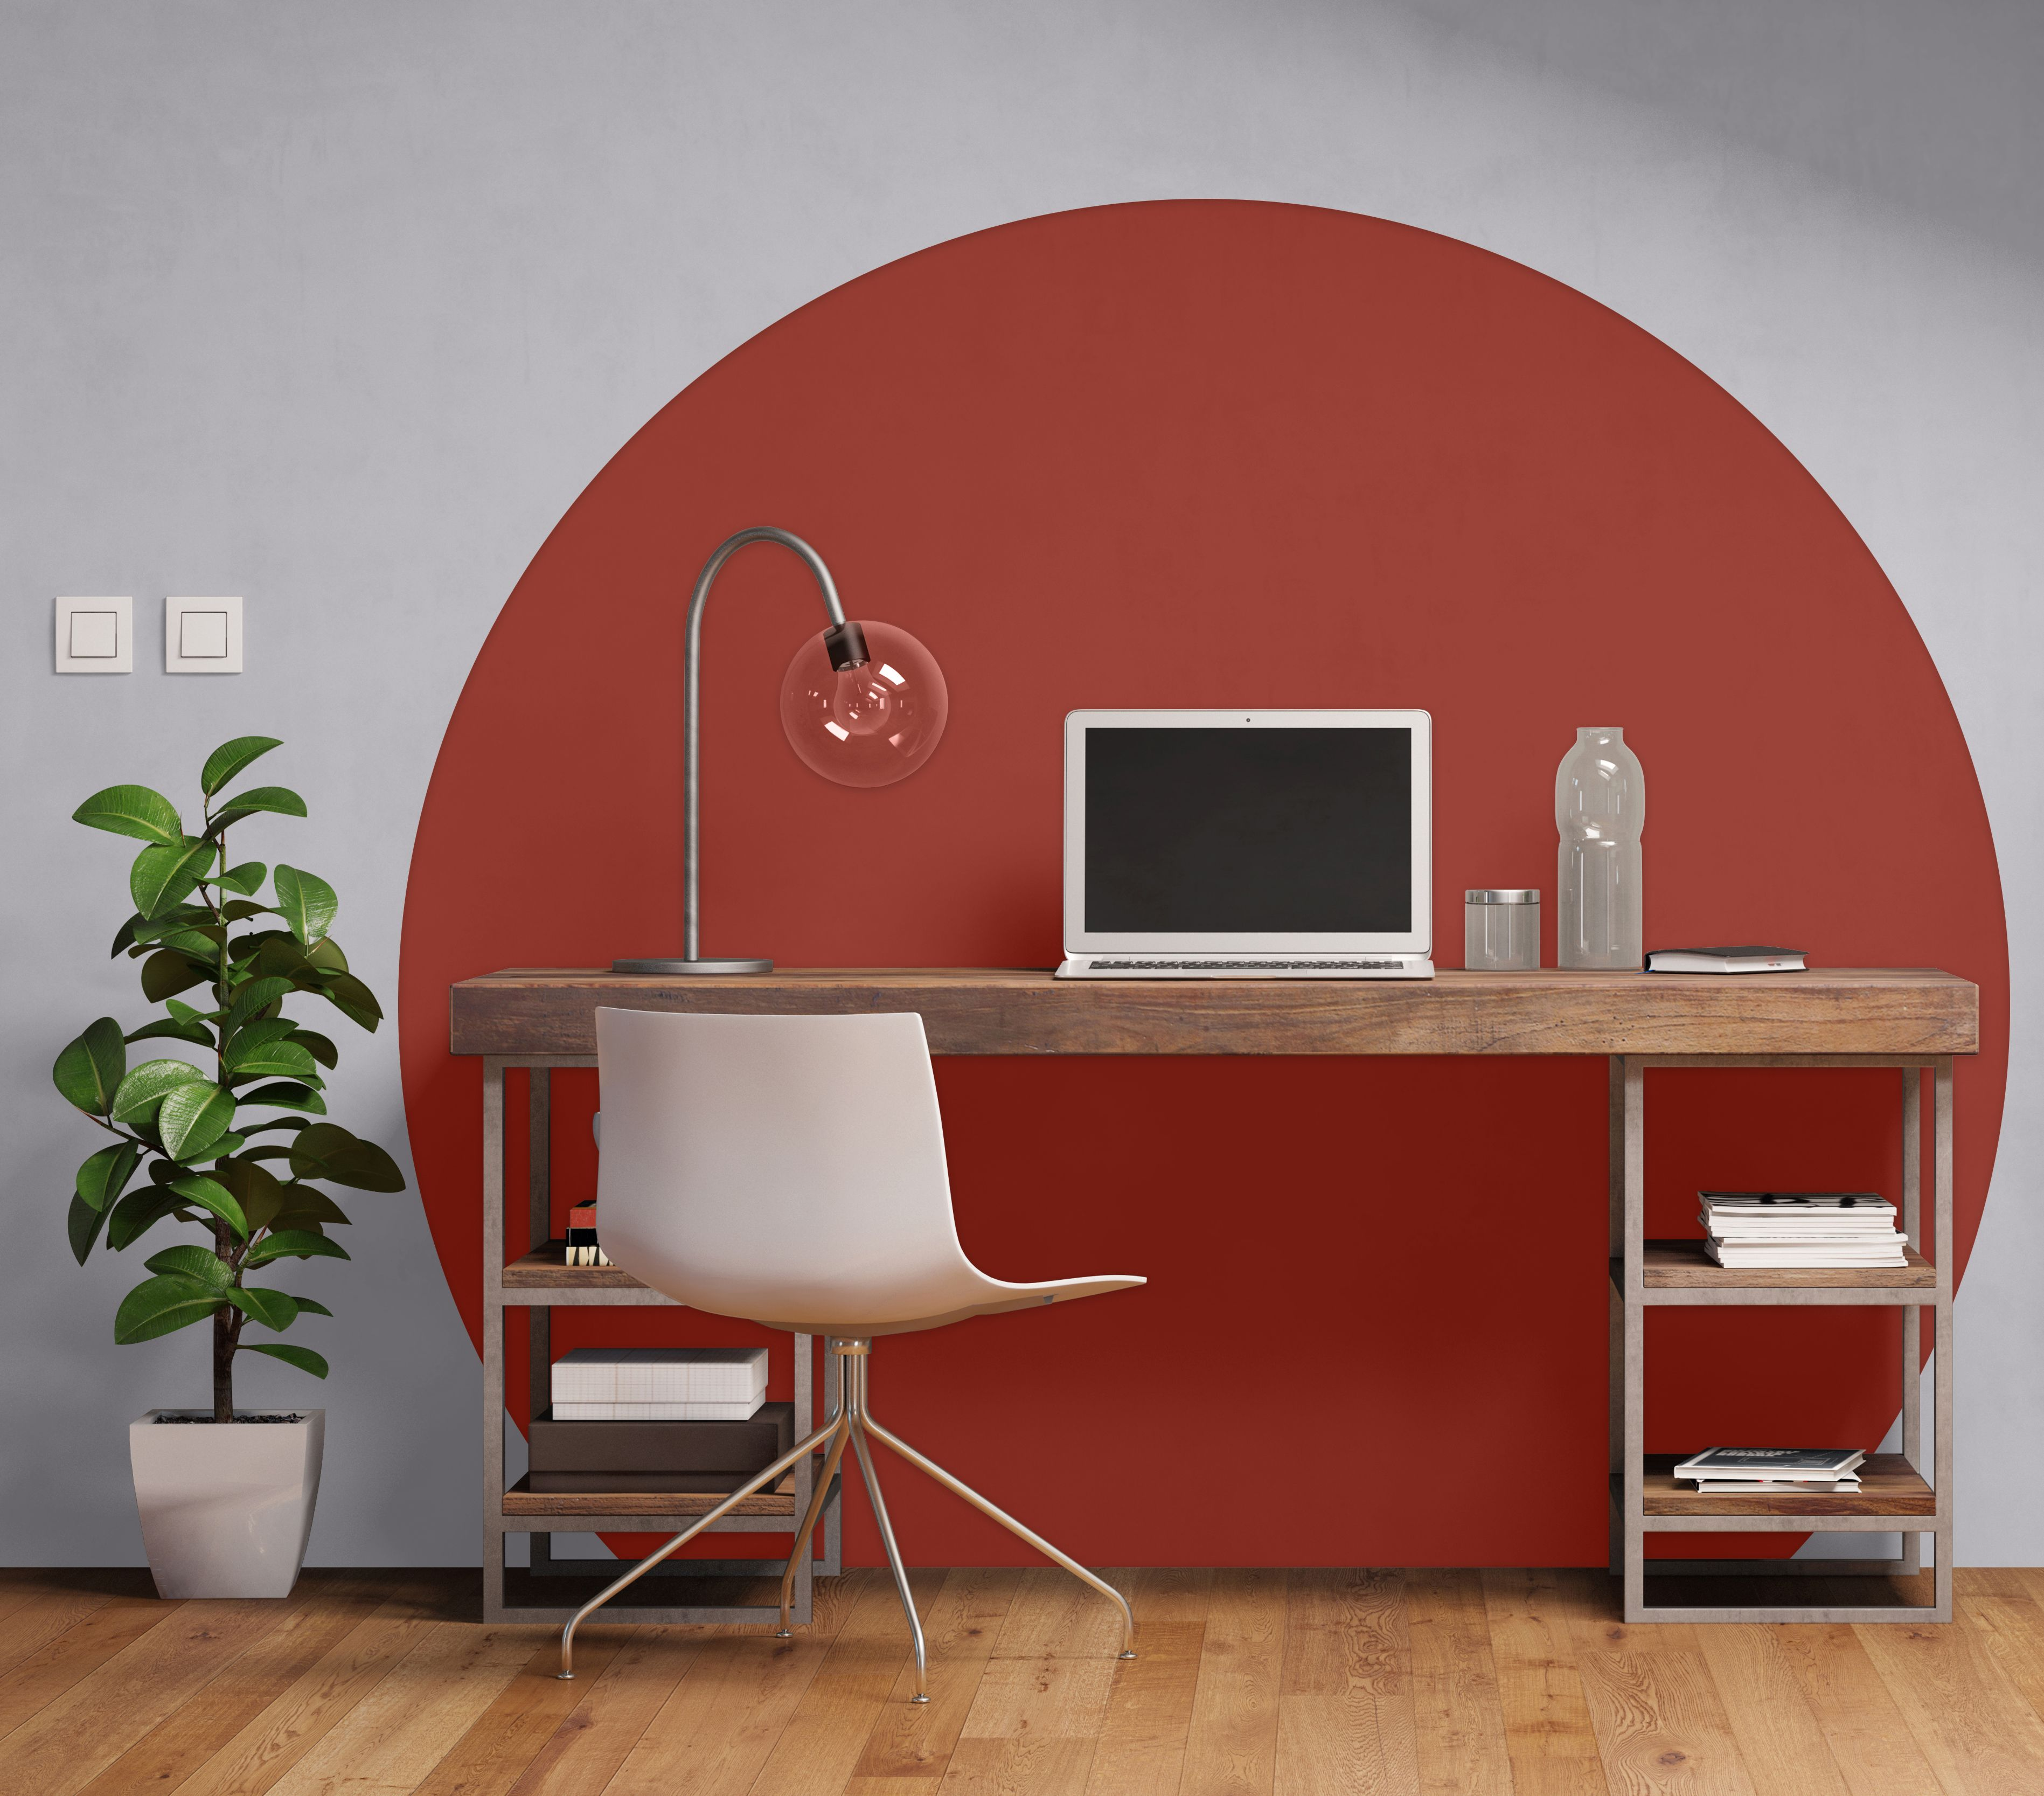 coolest shades of fall energize work study spaces ppg on home office color trends id=64922